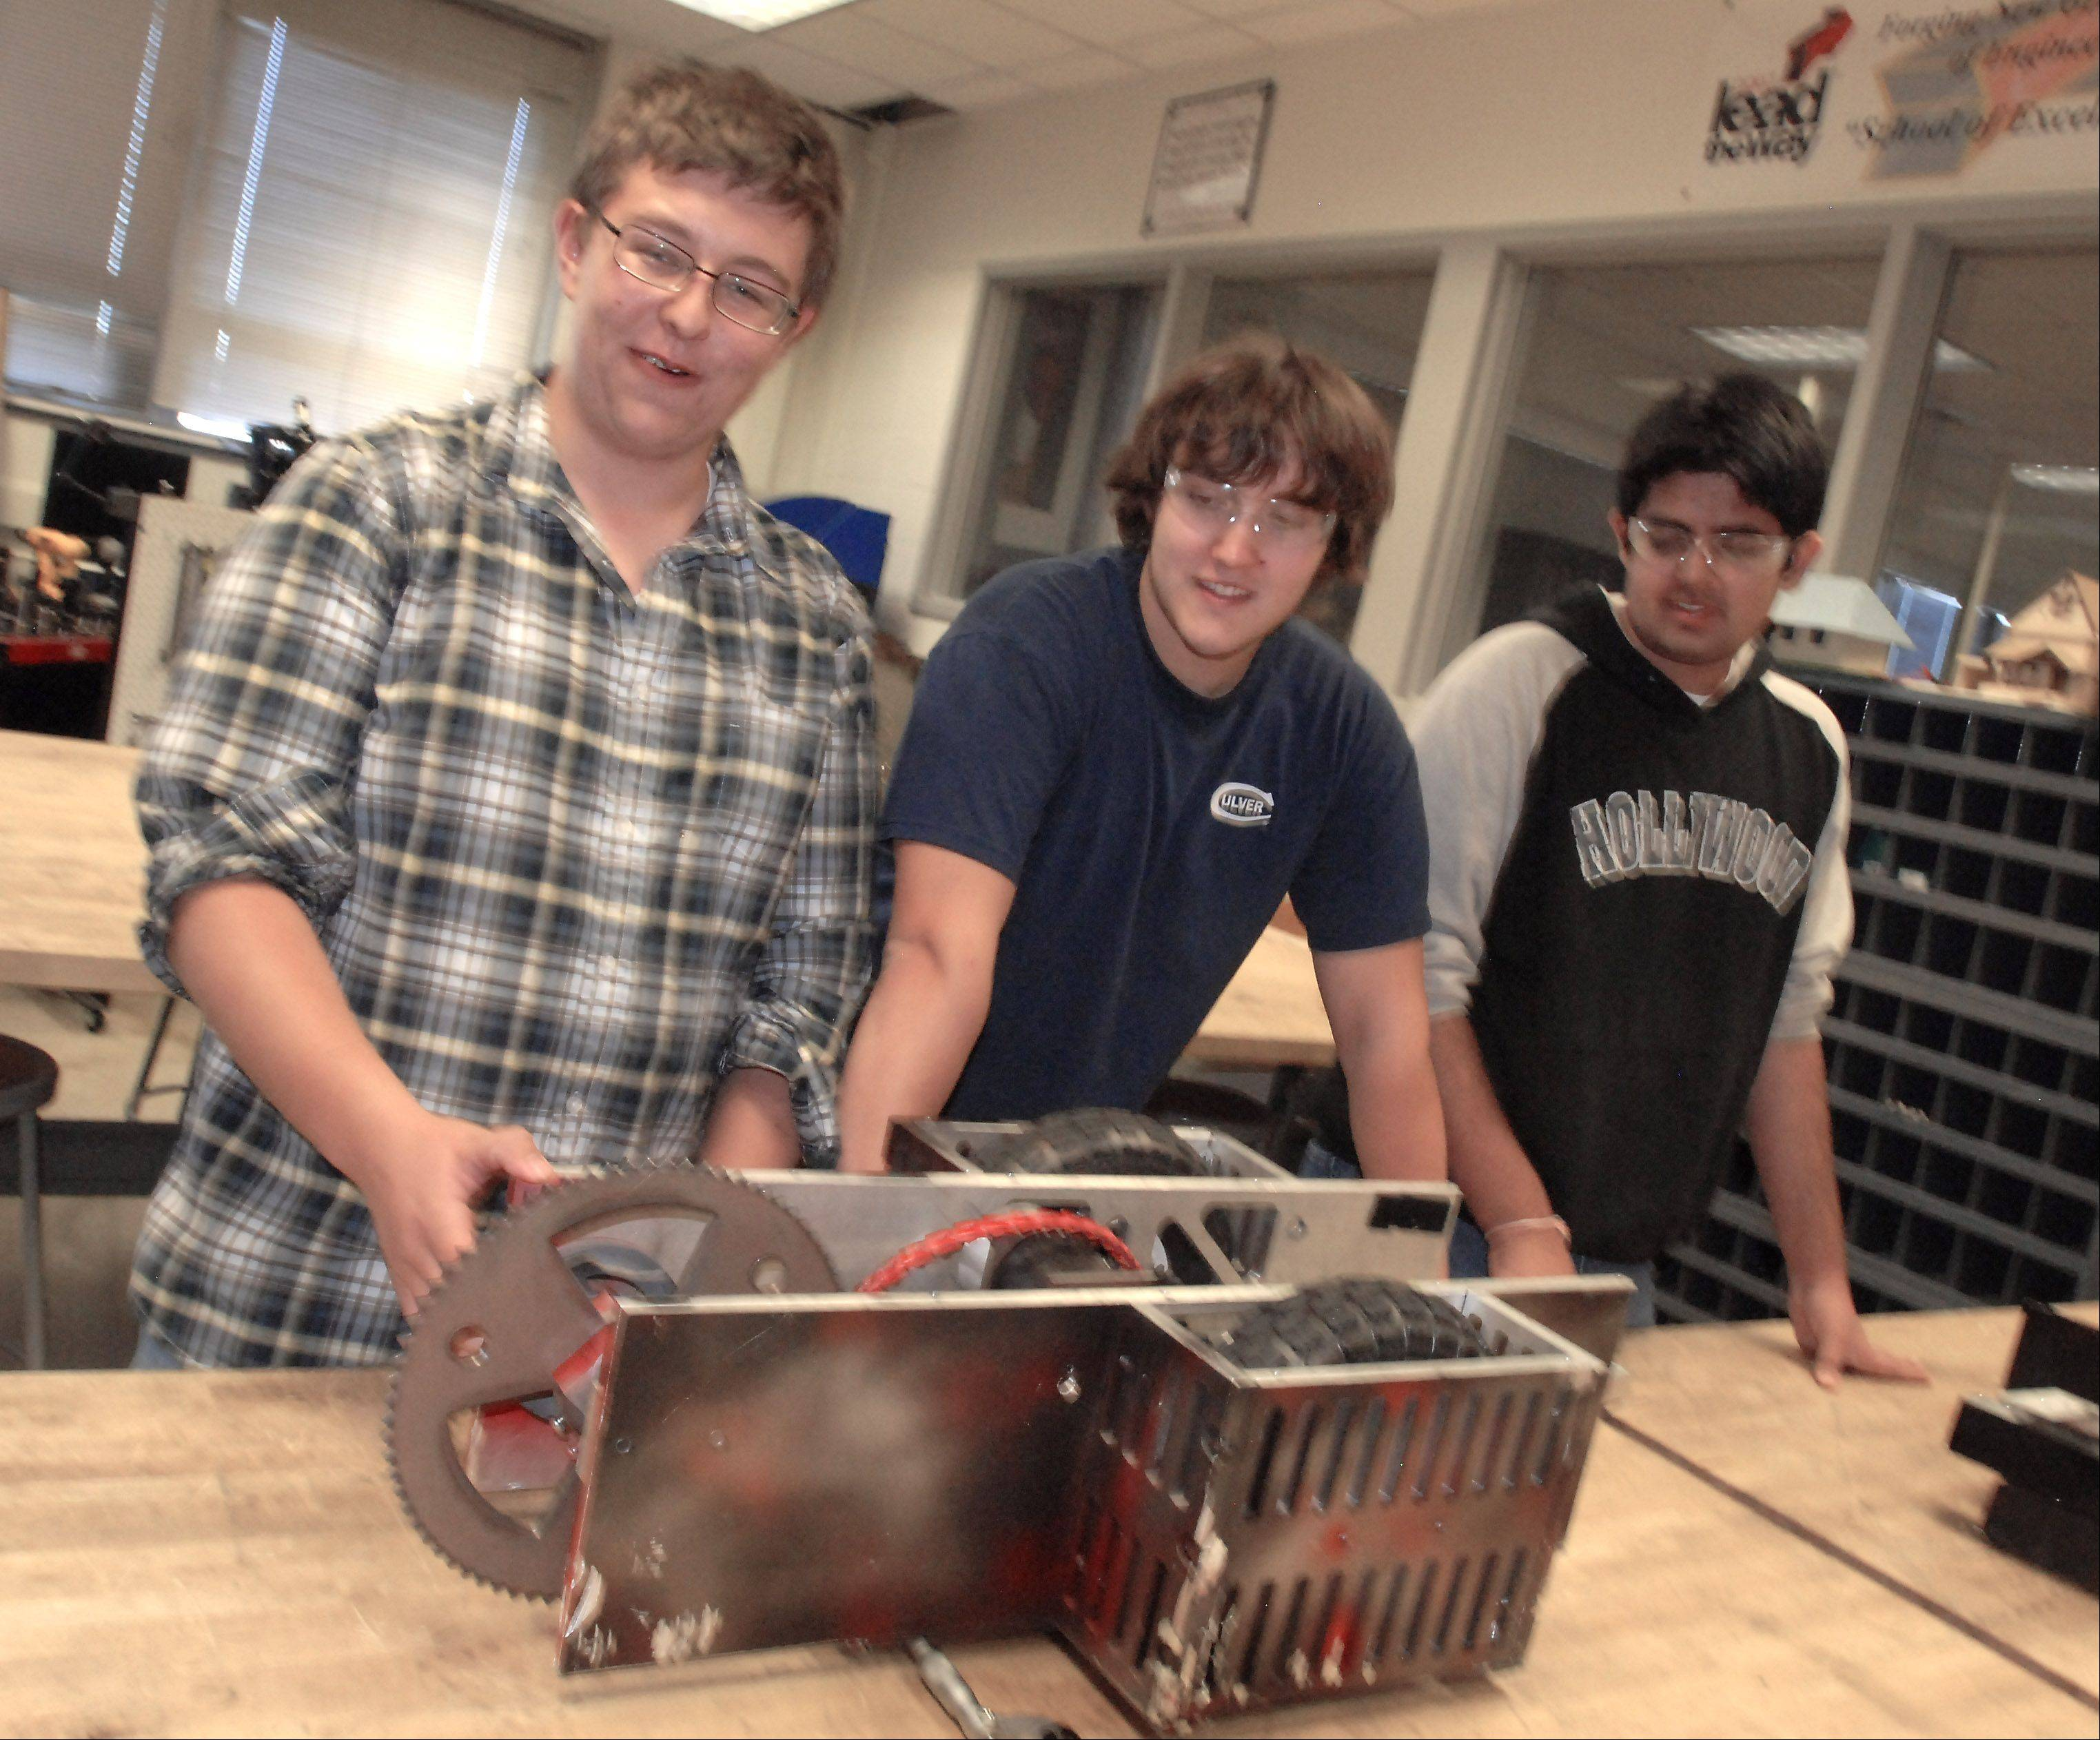 From left, sophomore Nick Crumbaugh and seniors Dan Shriber and Yogesh Kanal demonstrate part of the robot they built in Wheeling High School's manufacturing lab for an area BattleBots competition.